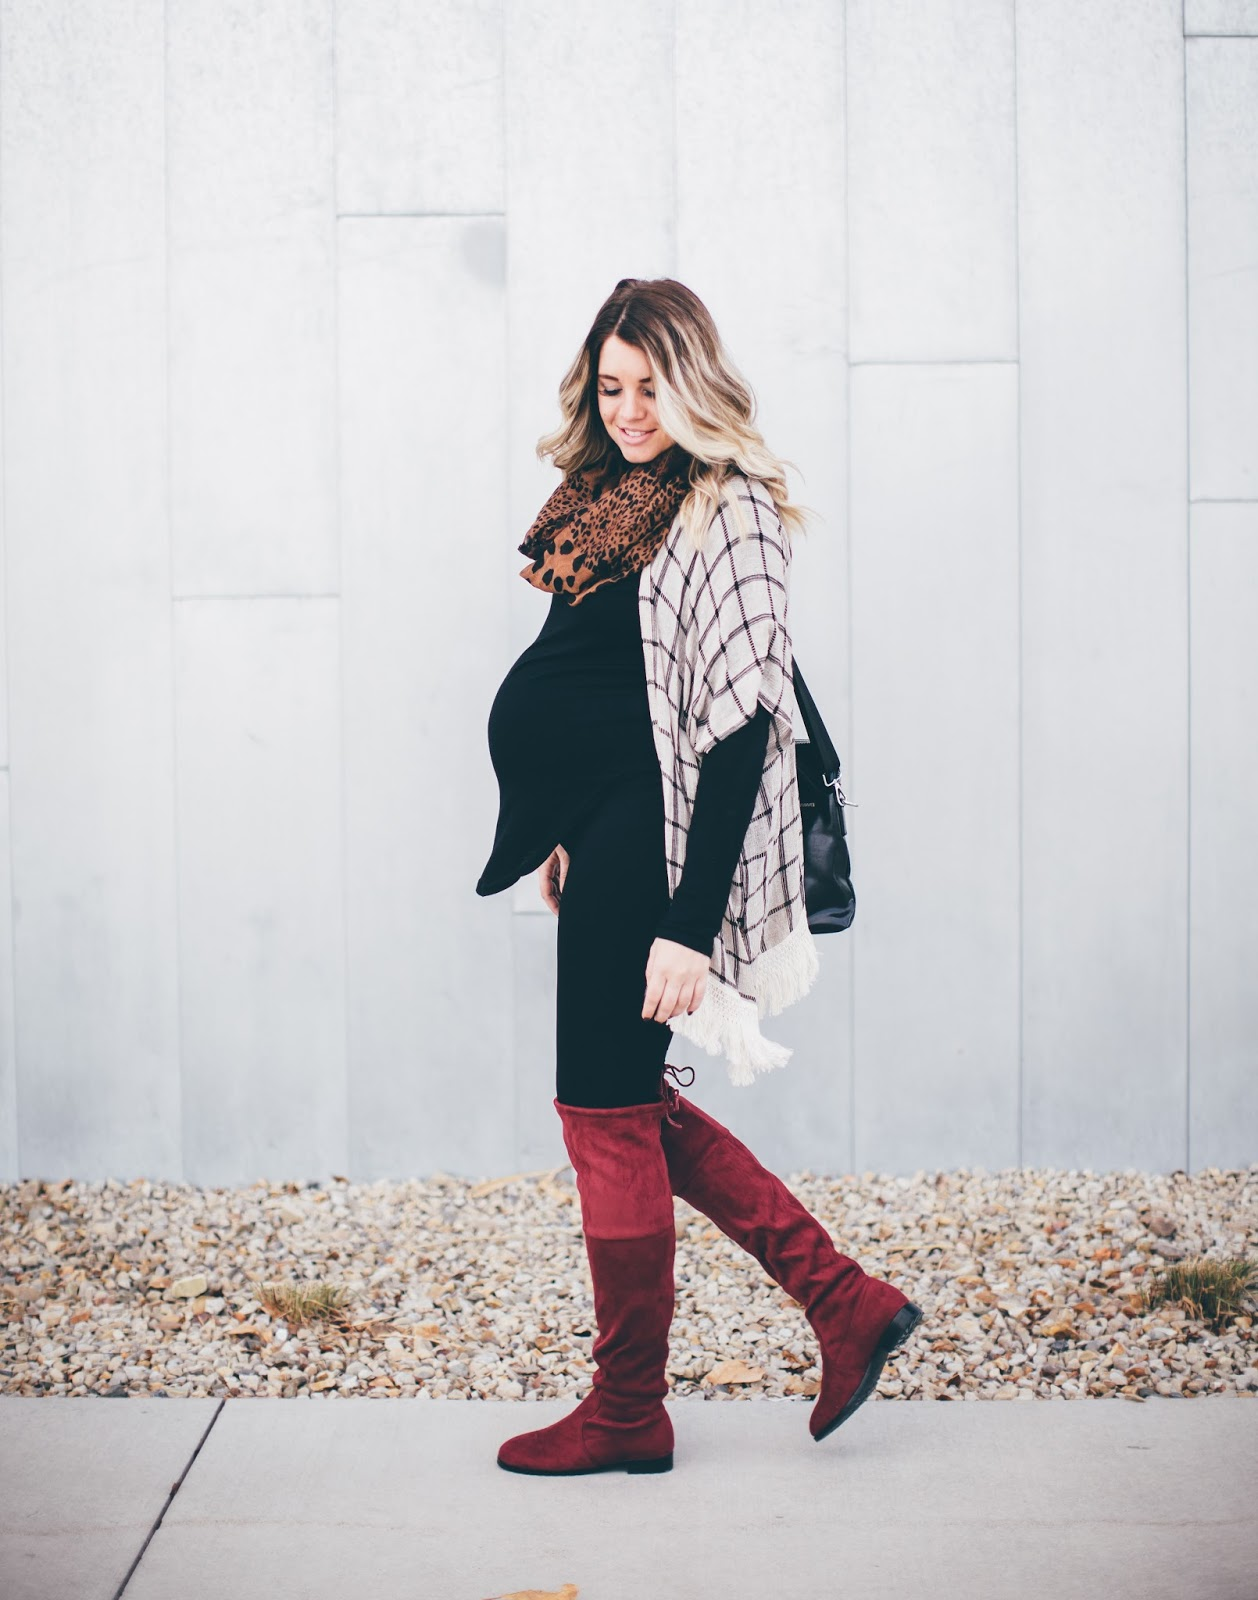 Pink Blush, Cardigan, Knee High Boots, Maternity Outfit